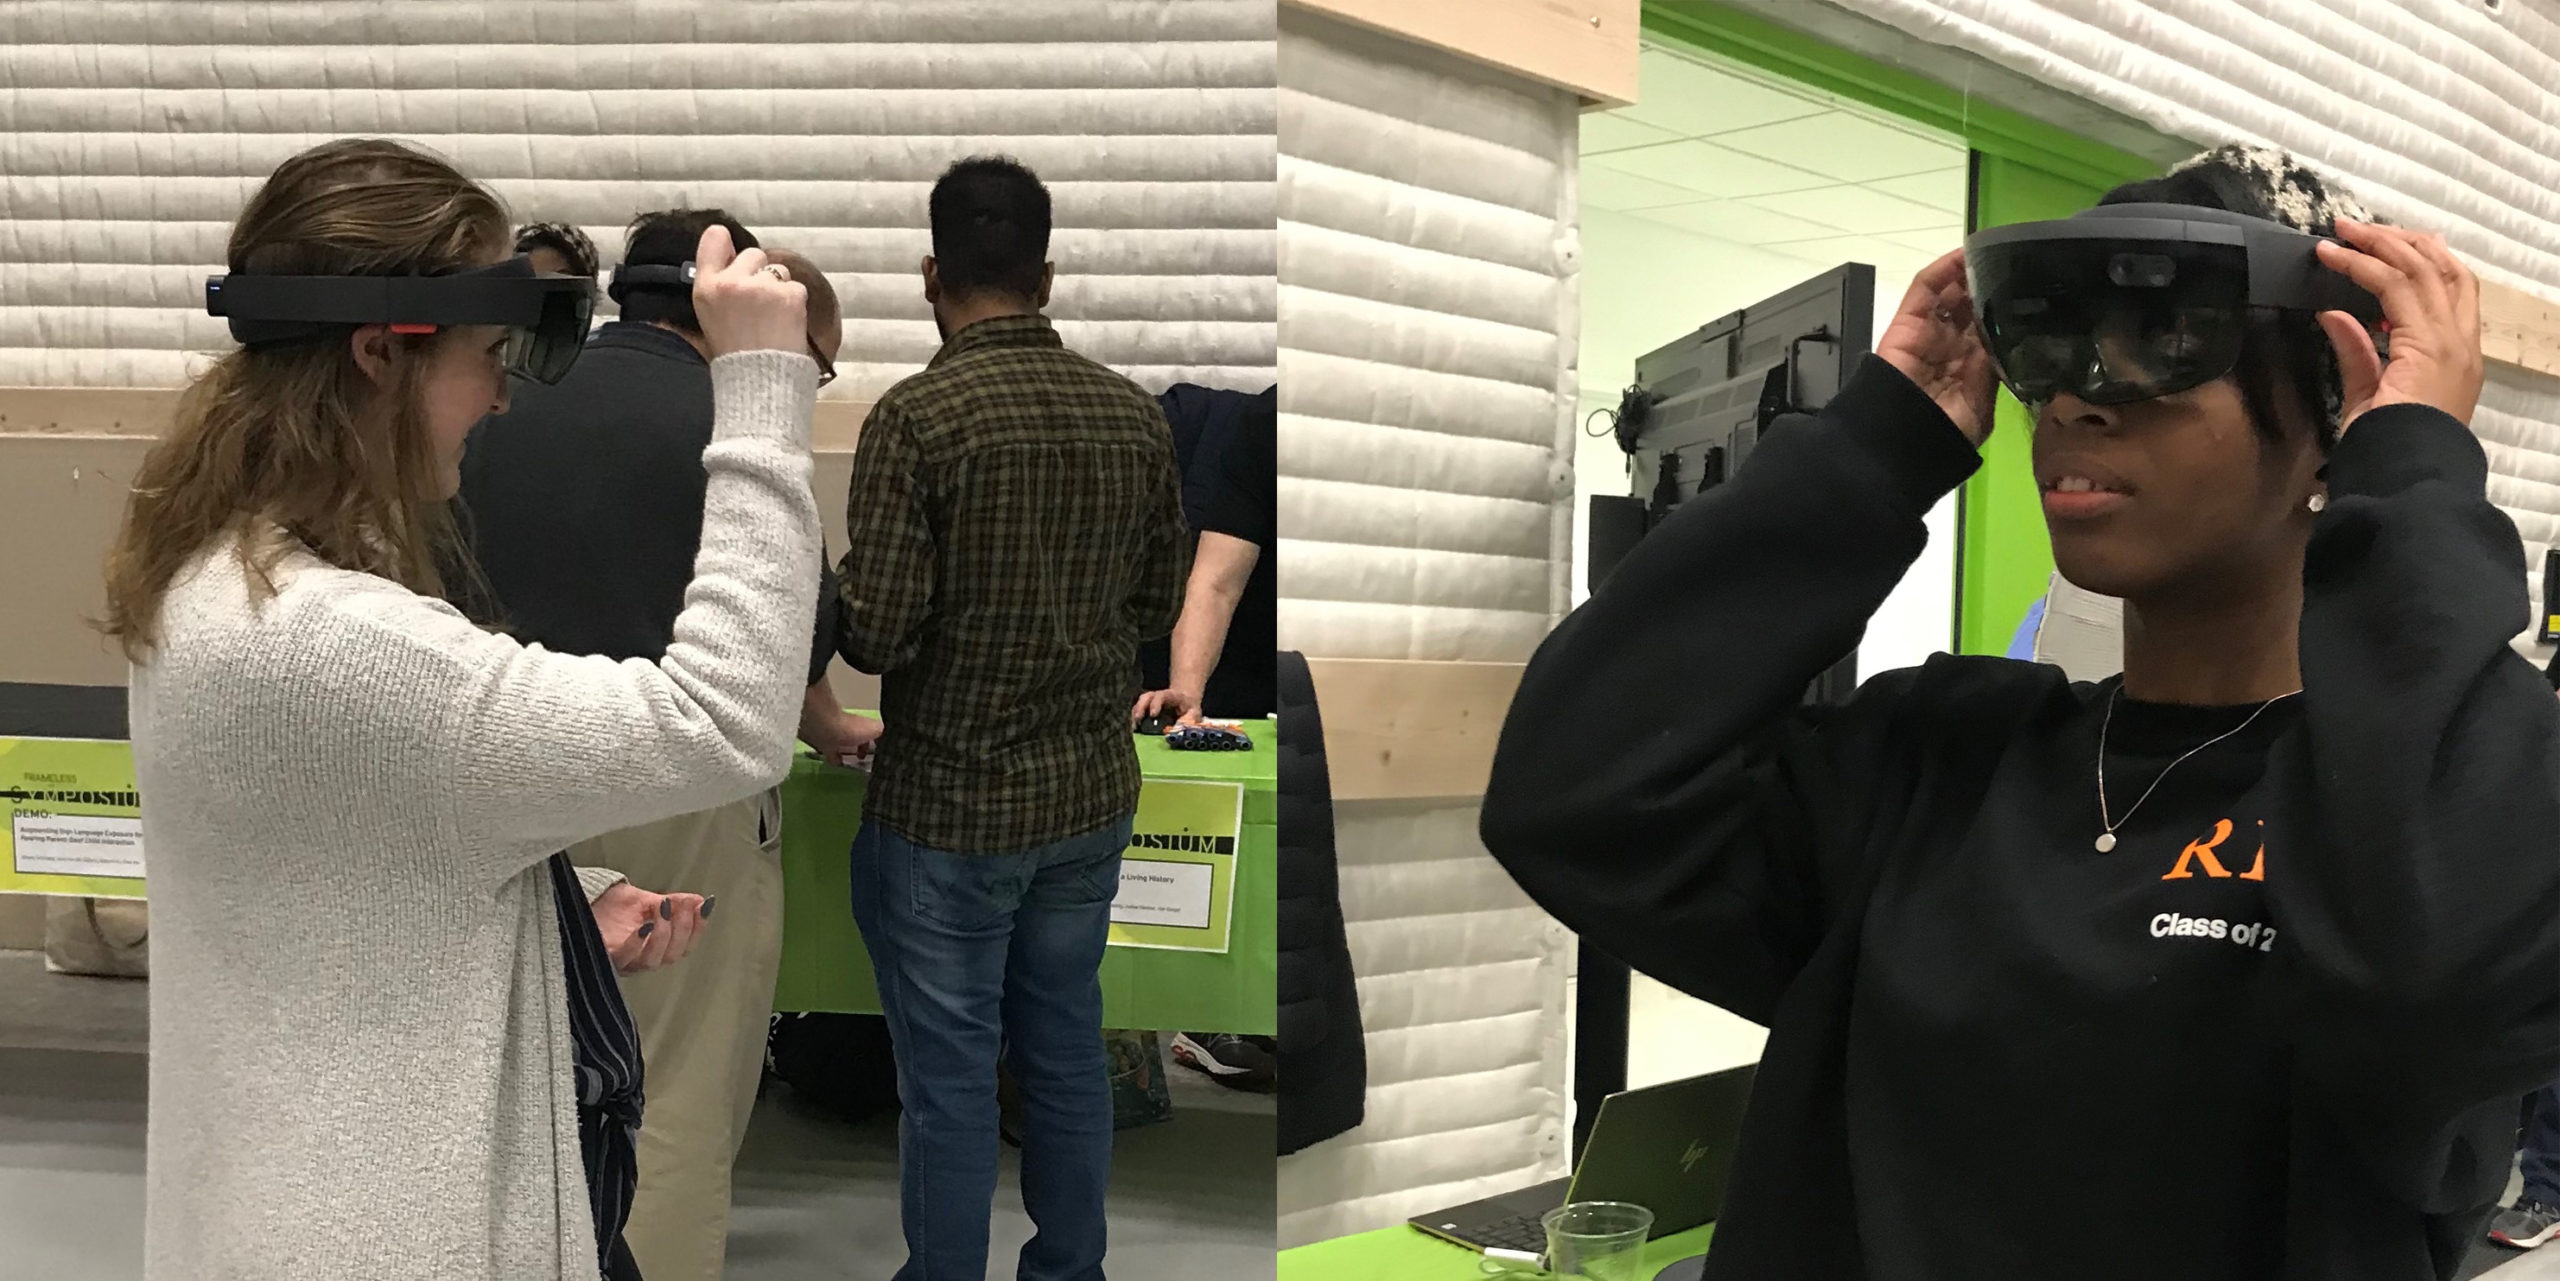 Left, Student learning navigation on HoloLens. Right, Student adjusting HoloLens head straps.